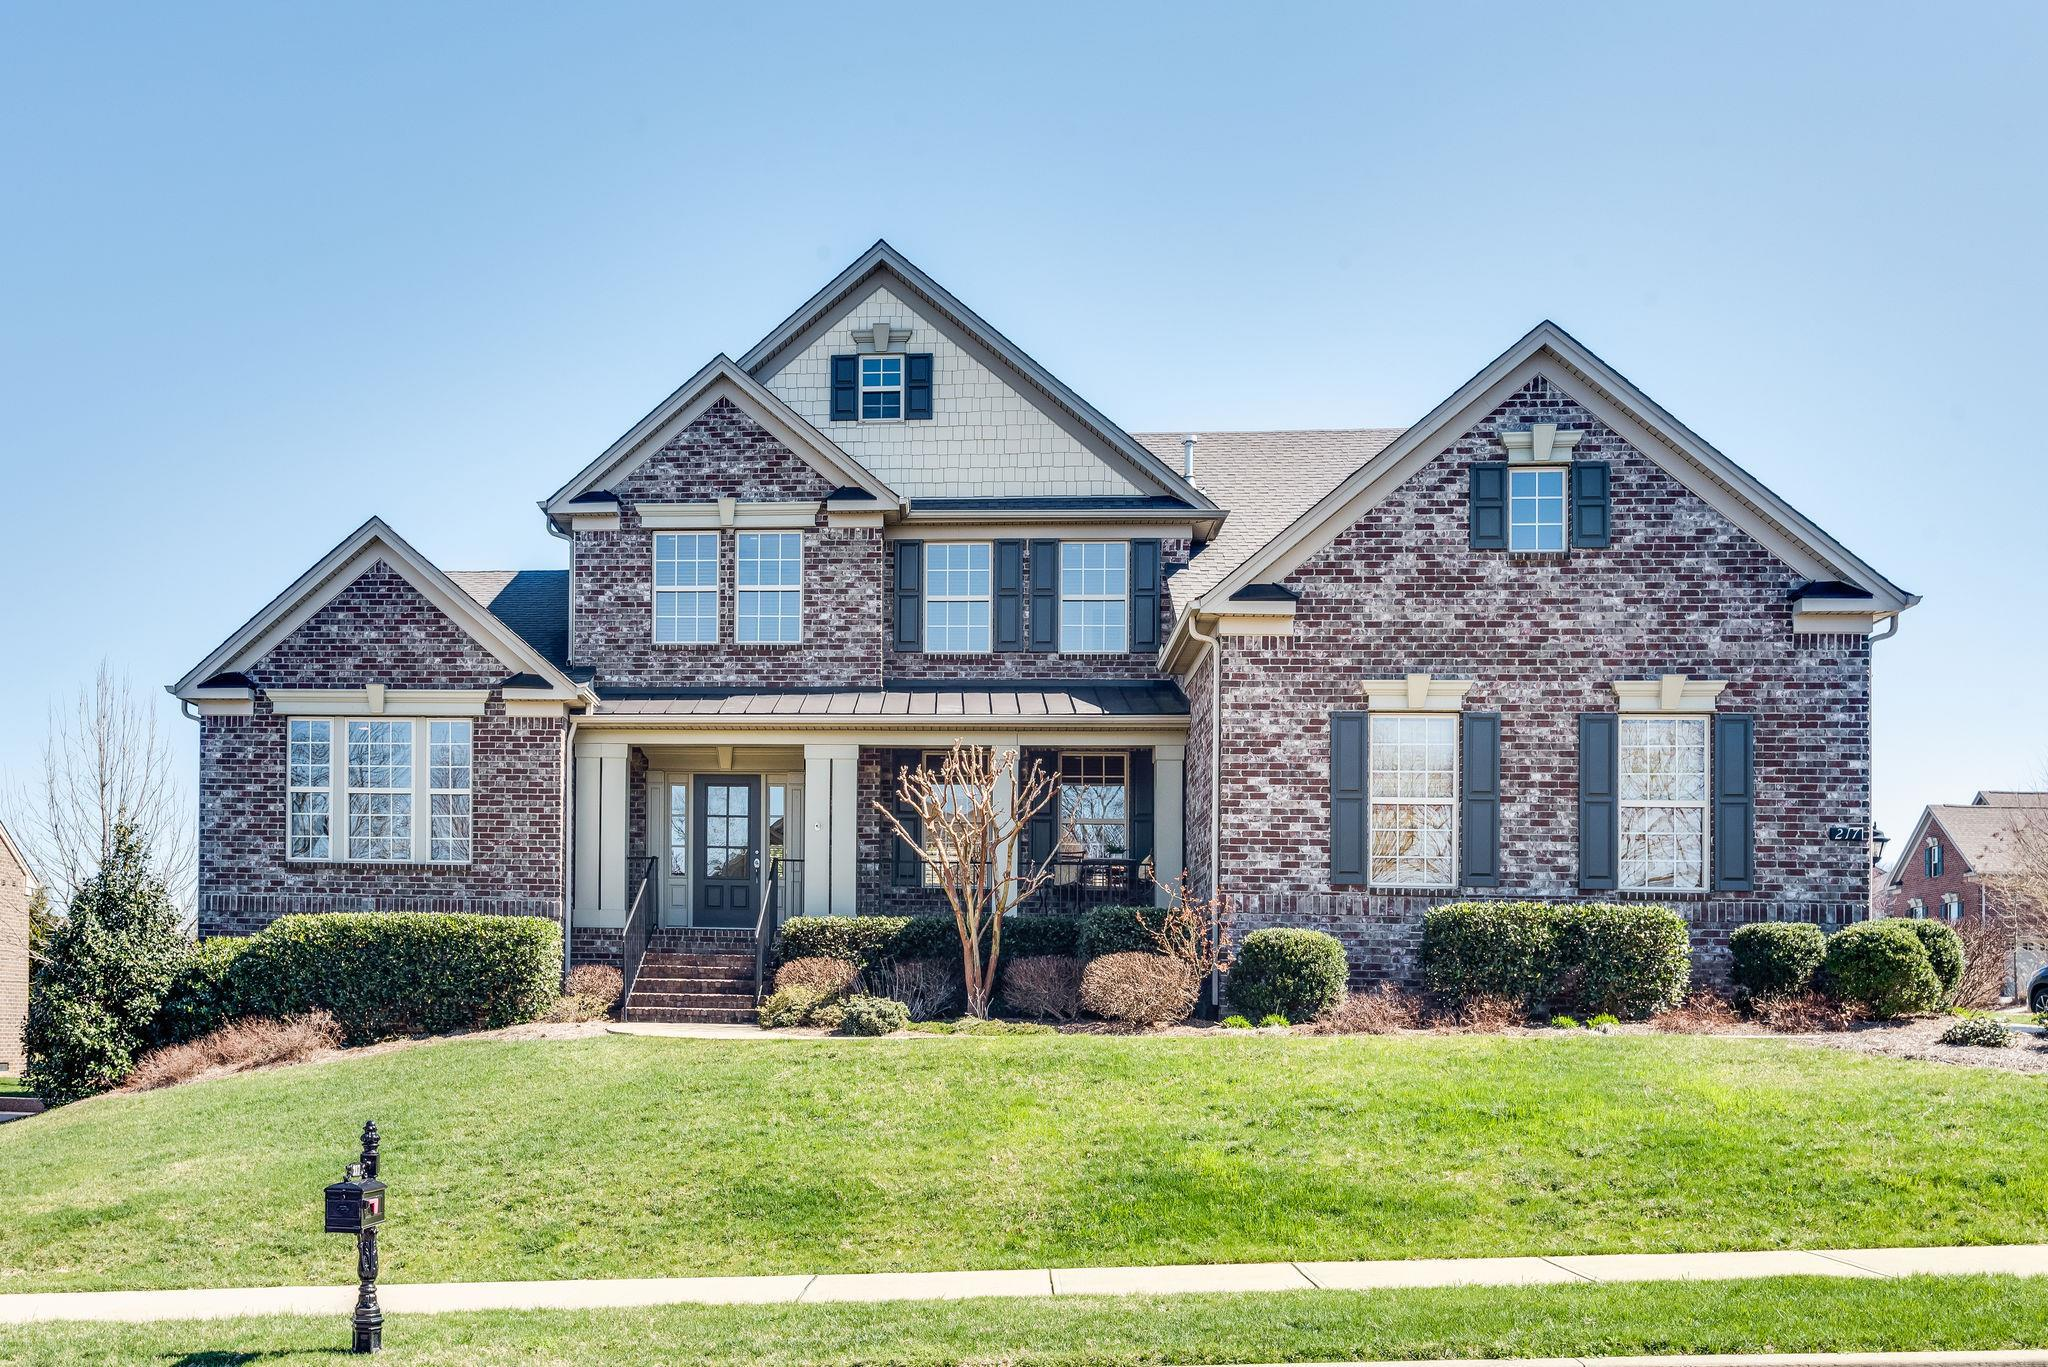 217 Terri Park Way, Franklin, TN 37067 - Franklin, TN real estate listing